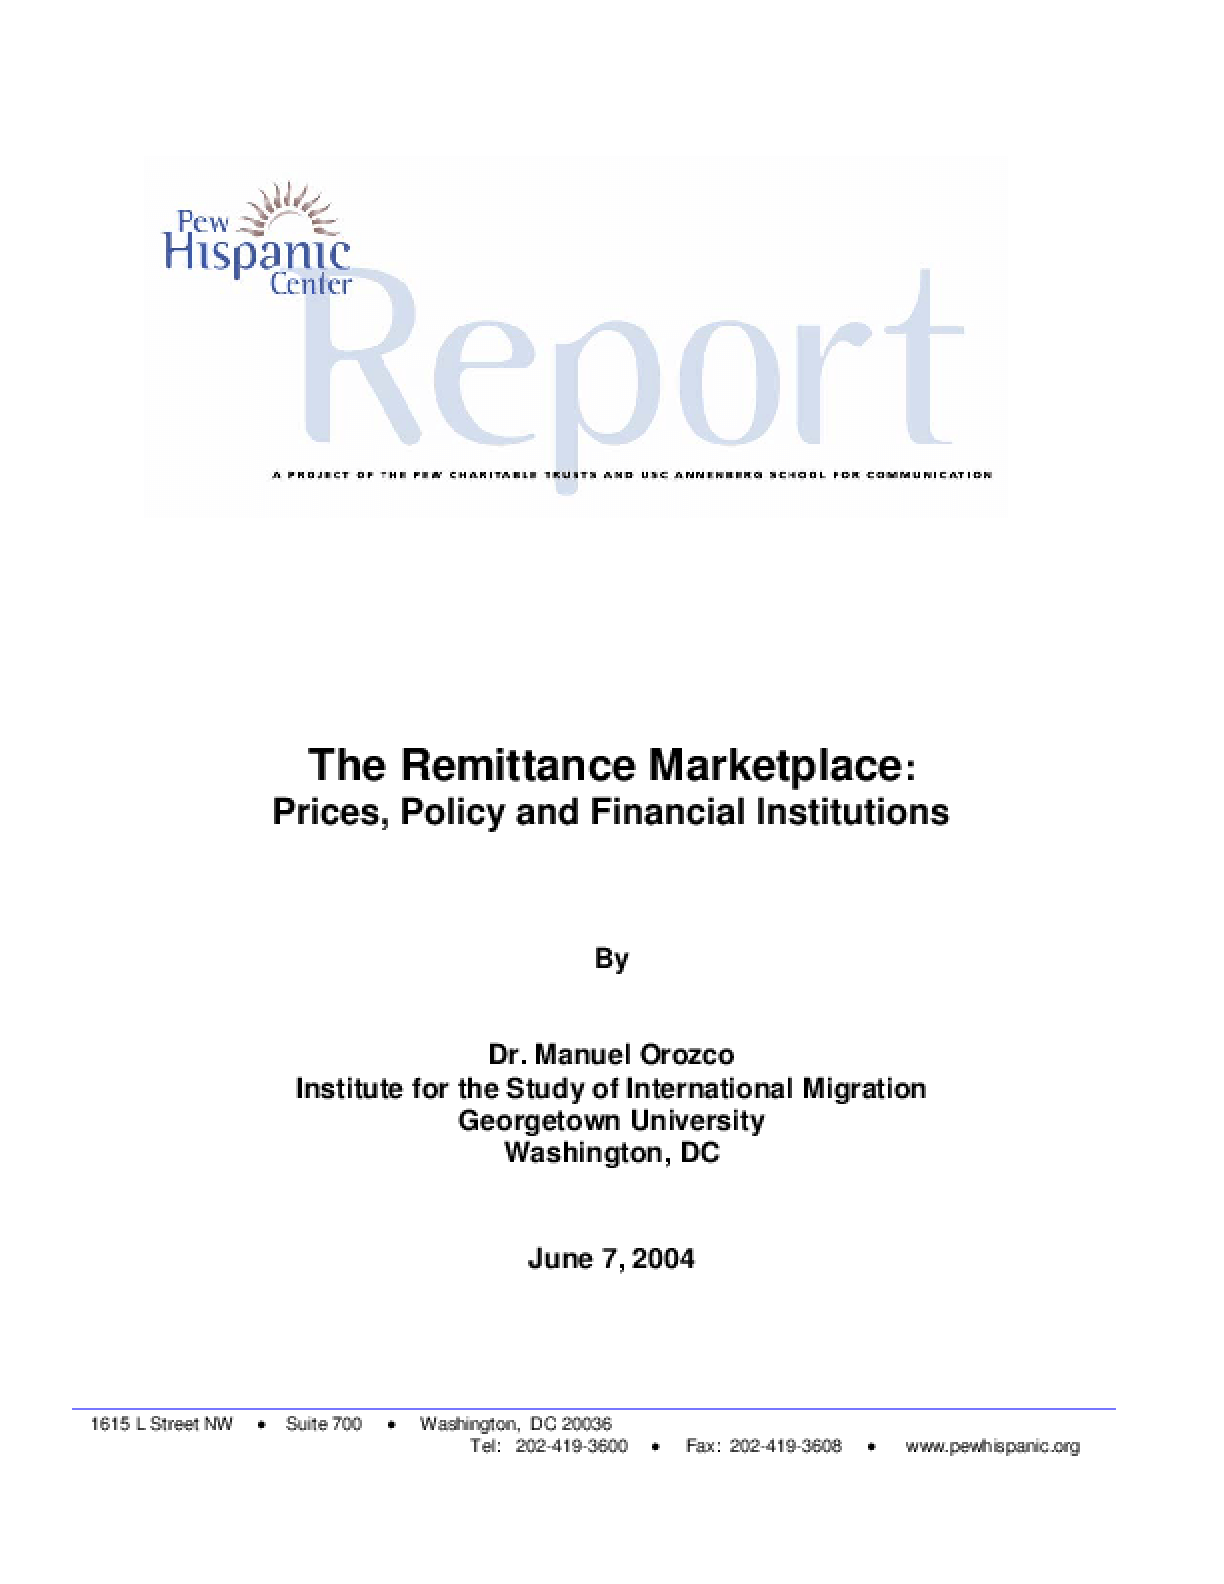 The Remittance Marketplace: Prices, Policy and Financial Institutions